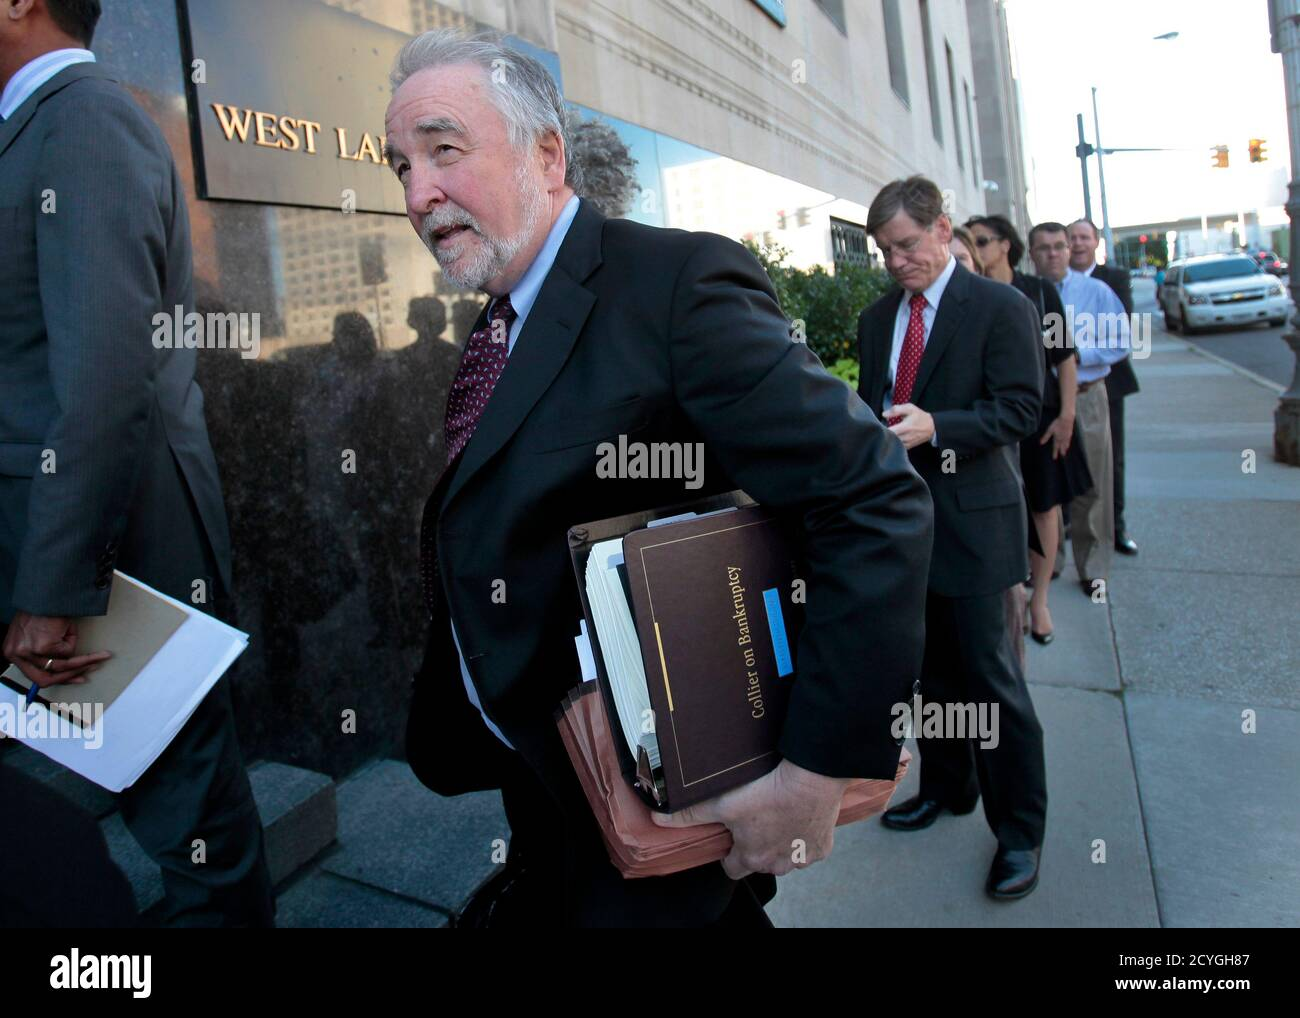 Michael Nicholson High Resolution Stock Photography And Images Alamy This is genuinely the nicest thing anyone has every said to me. https www alamy com general counsel for united auto workers union michael nicholson holds a bankruptcy book as he stands in line to enter the federal courthouse for day one of detroits municipal bankruptcy hearings in detroit michigan july 24 2013 reutersrebecca cook united states tags politics business image378378231 html